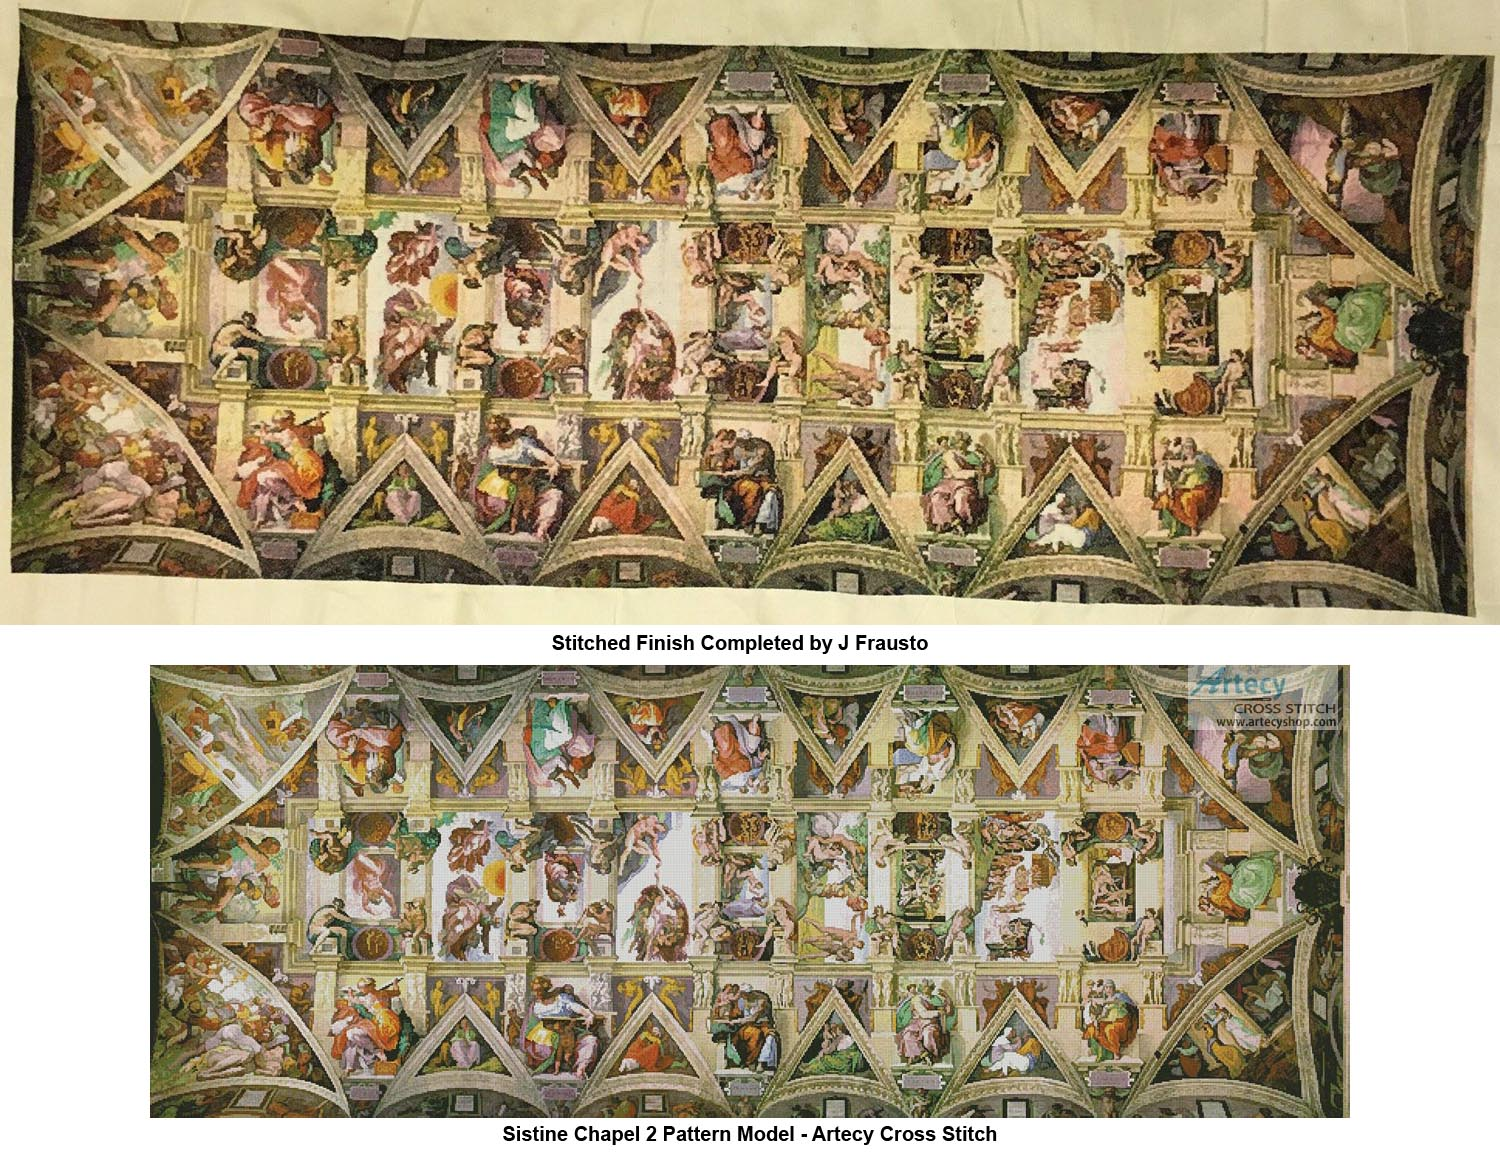 53b81abfe53 Sistine Chapel 2. Completed by J Frausto Click on image for larger picture.